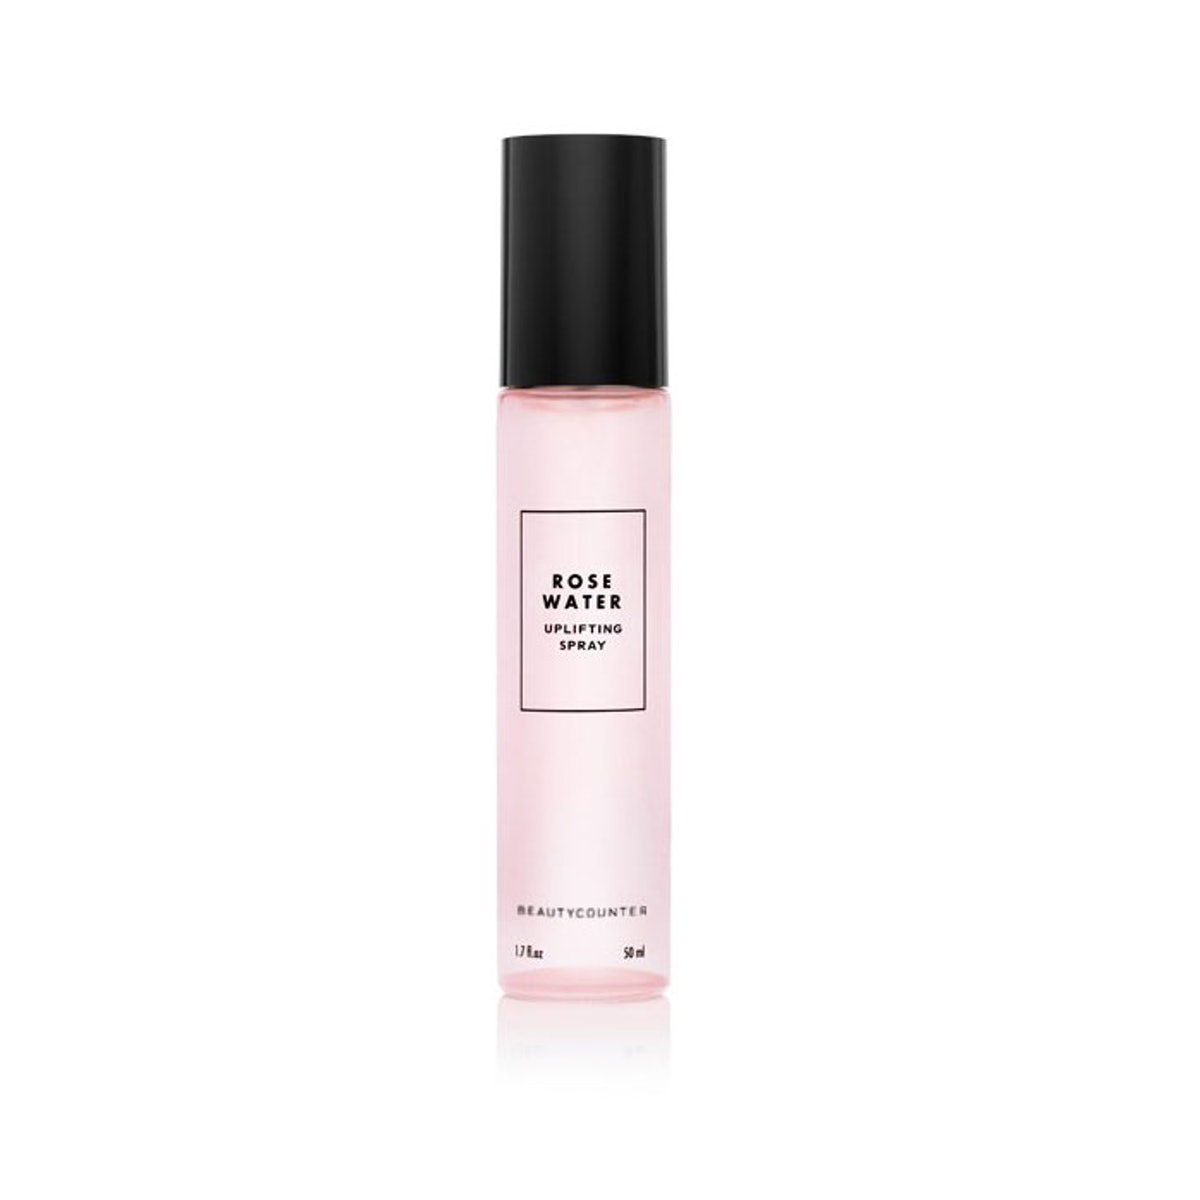 Beauty Counter rose water uplifting spray